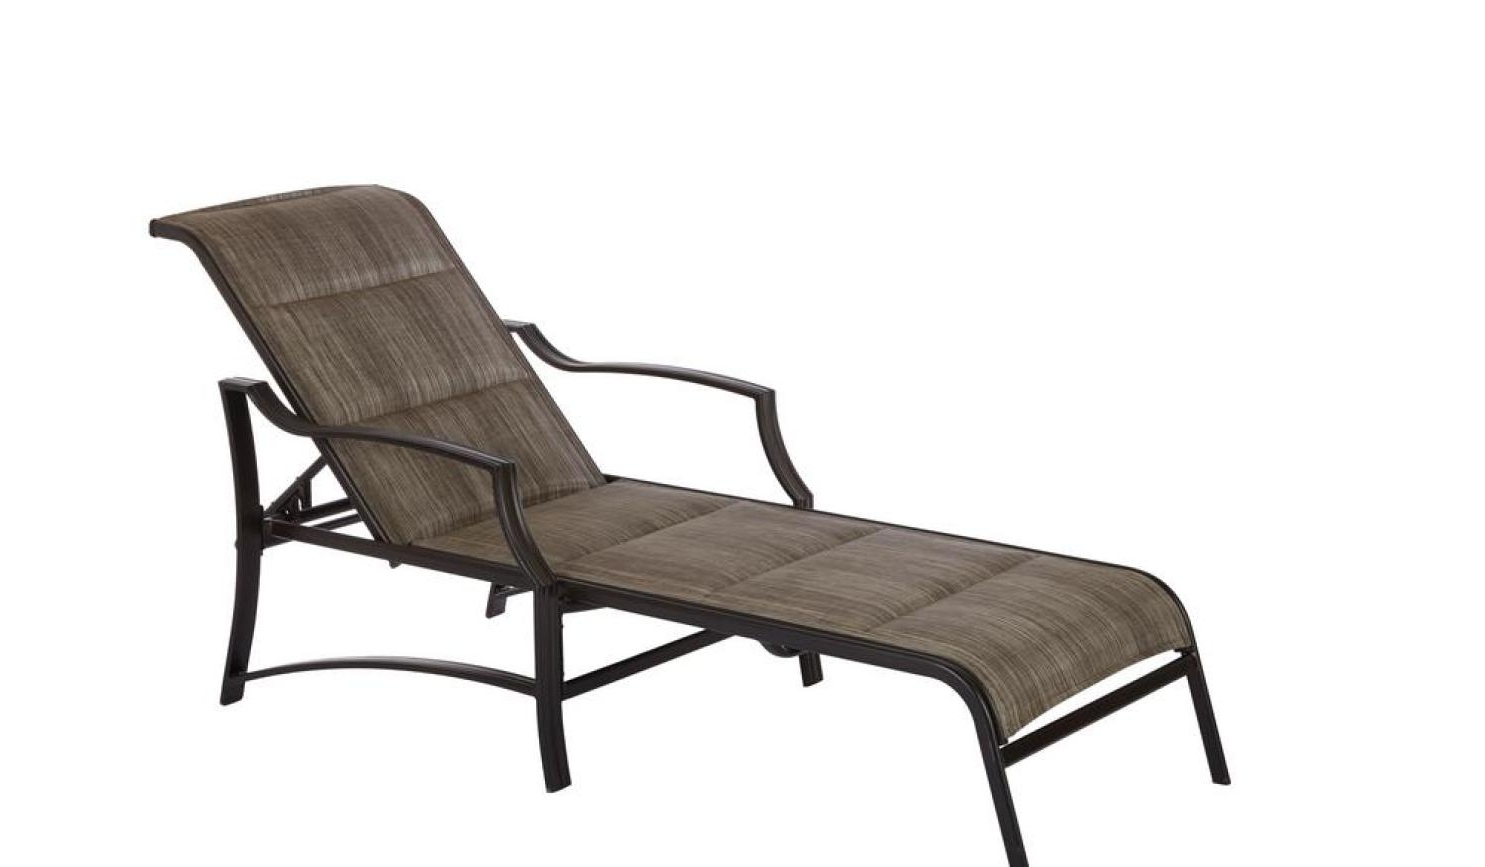 Sears Chaise Lounges Inside Favorite Chair : Shocking Tremendous Chaise Lounge Outdoor Sears Dreadful (View 11 of 15)